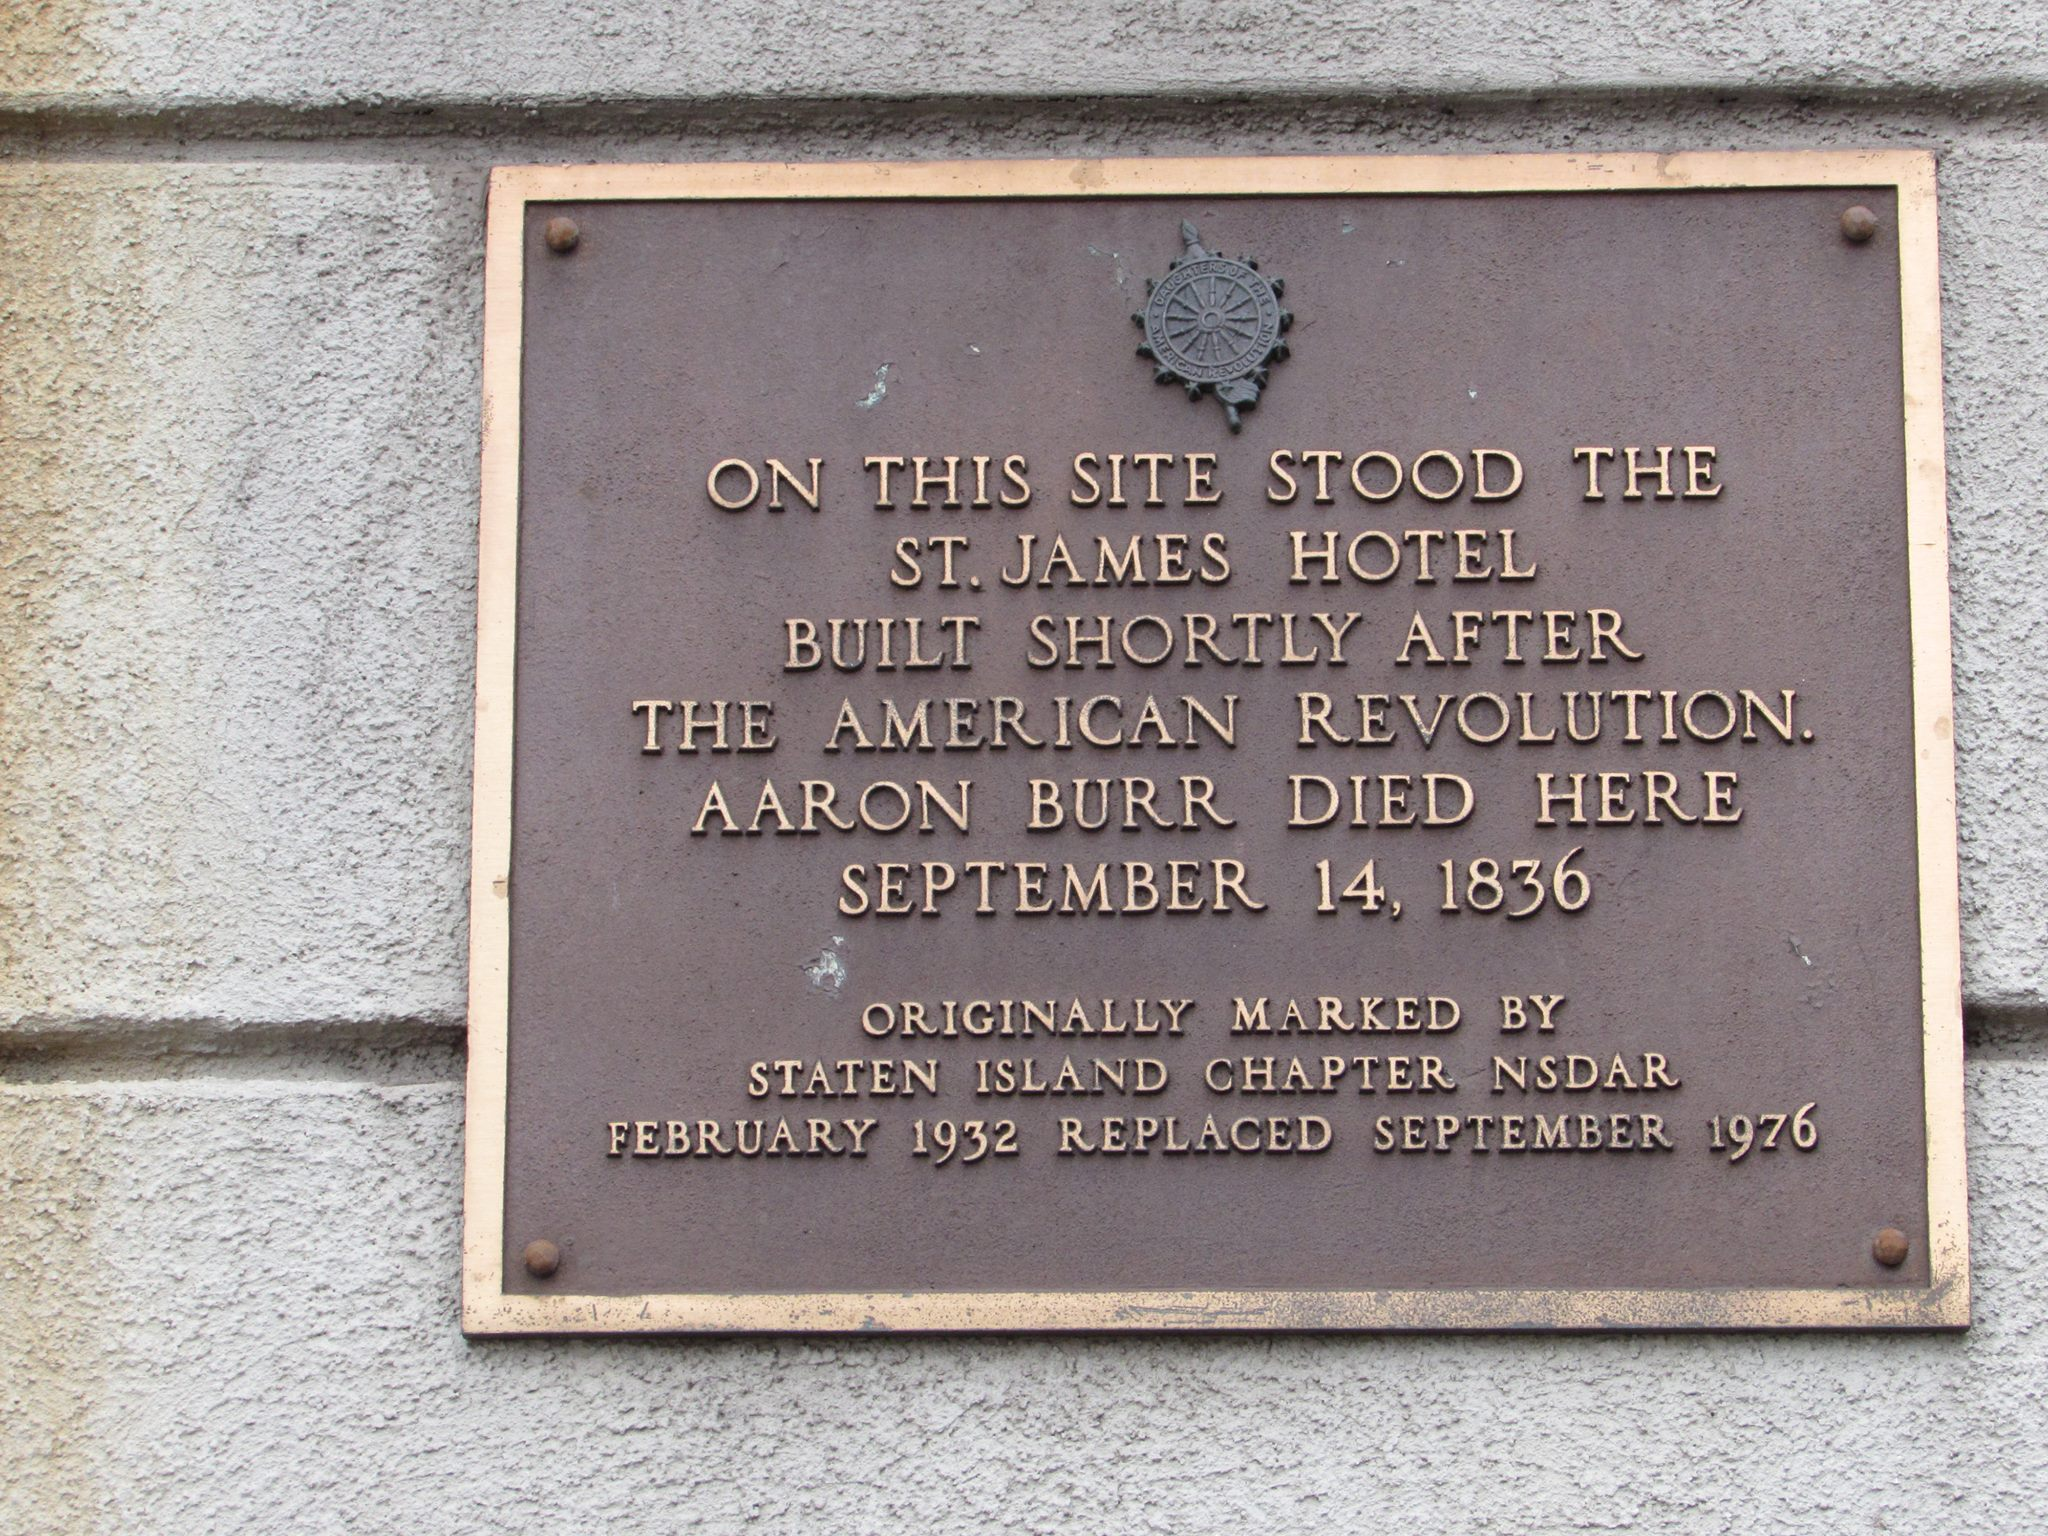 This is a plaque on the front of the apartment building that marks the old St. James Hotel and the death of Aaron Burr Jr.